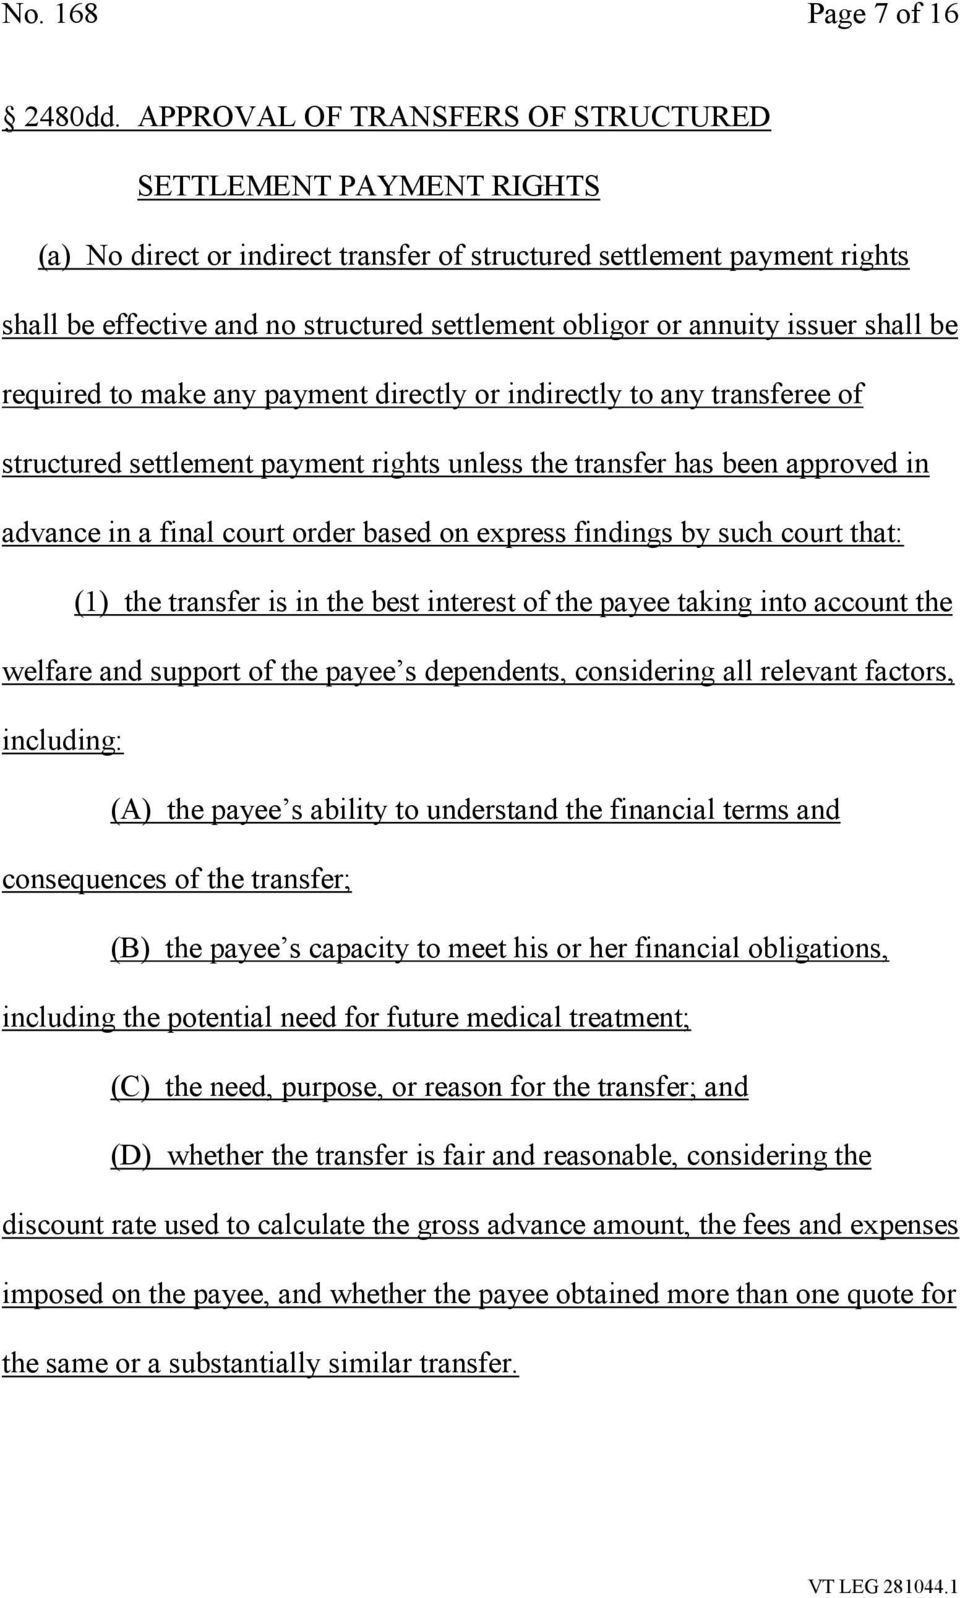 annuity issuer shall be required to make any payment directly or indirectly to any transferee of structured settlement payment rights unless the transfer has been approved in advance in a final court